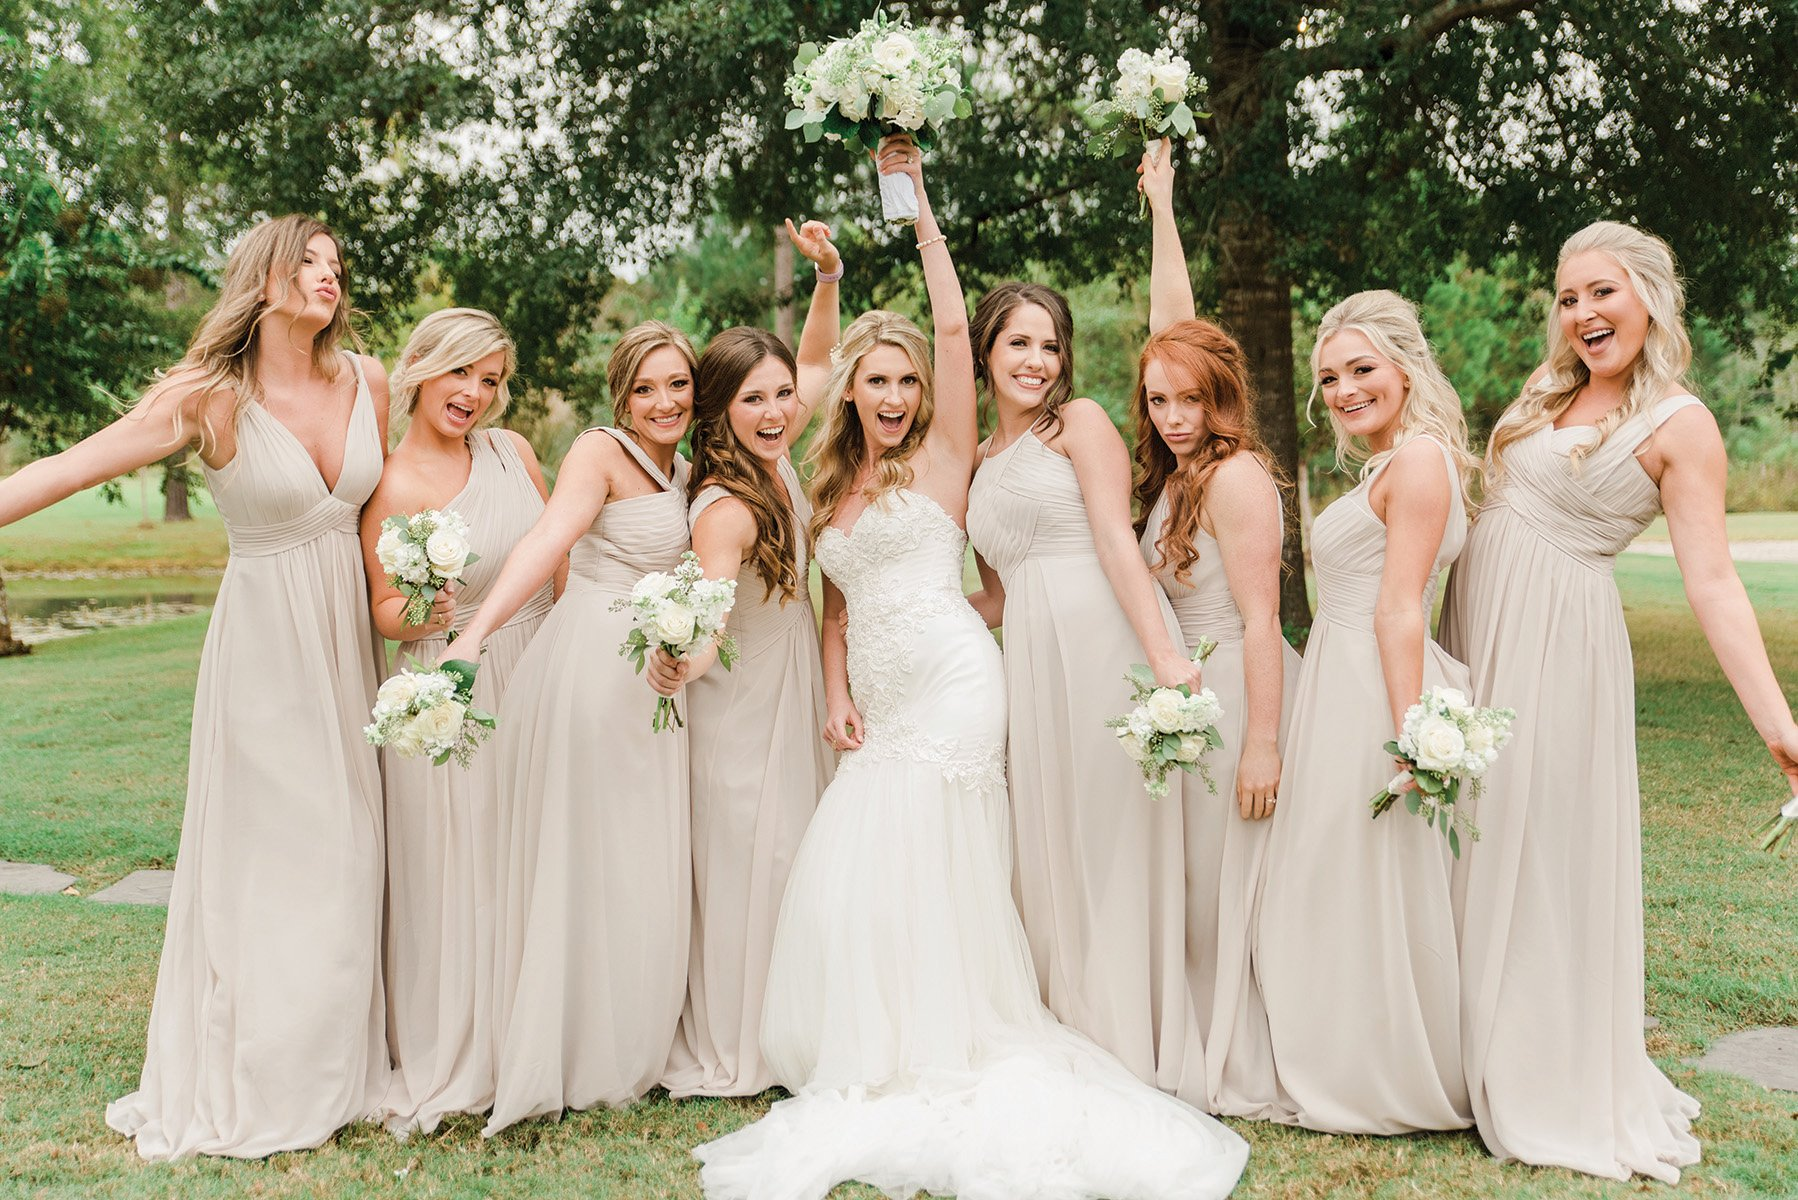 bridesmaids & bride - fun wedding party photo ideas